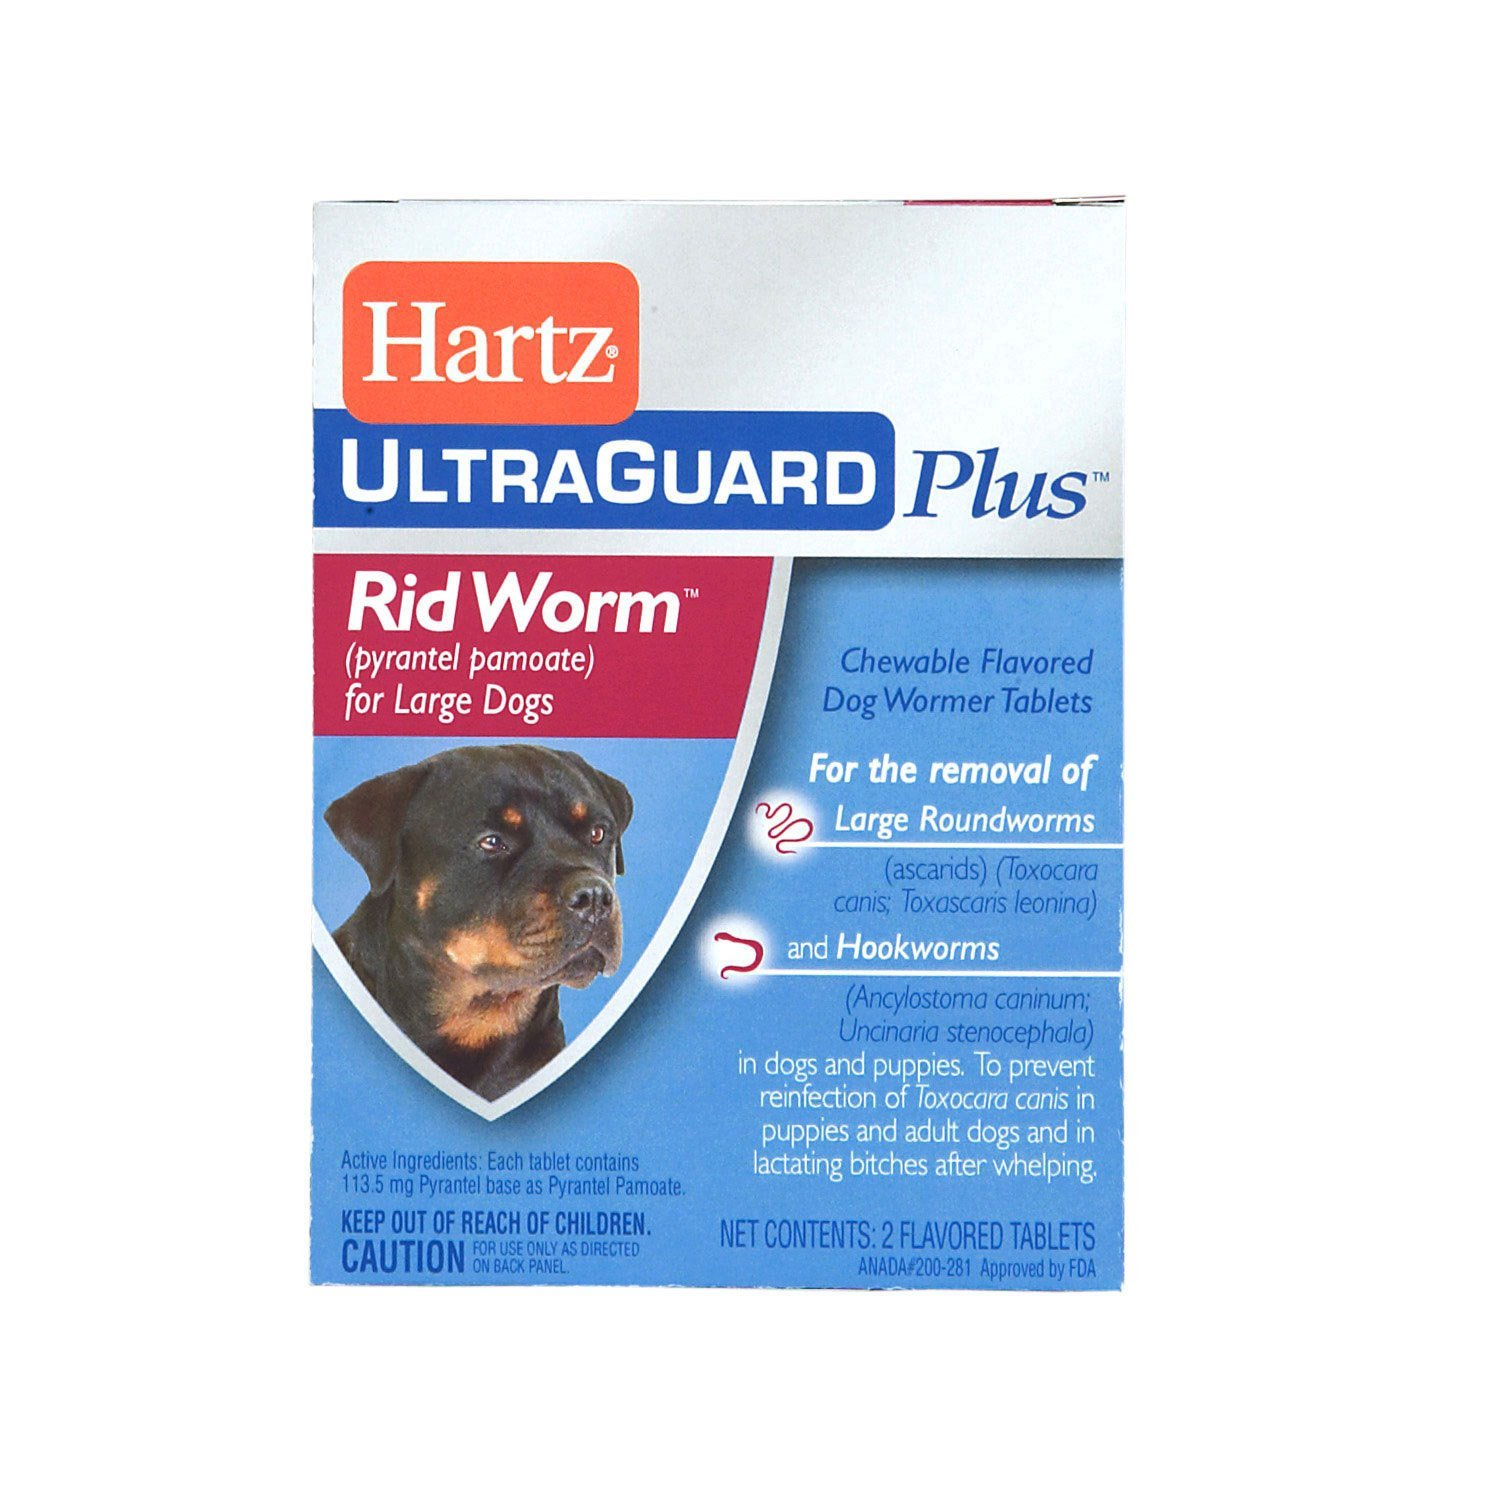 Hartz UltraGuard Plus Rid Worm Tab Dog